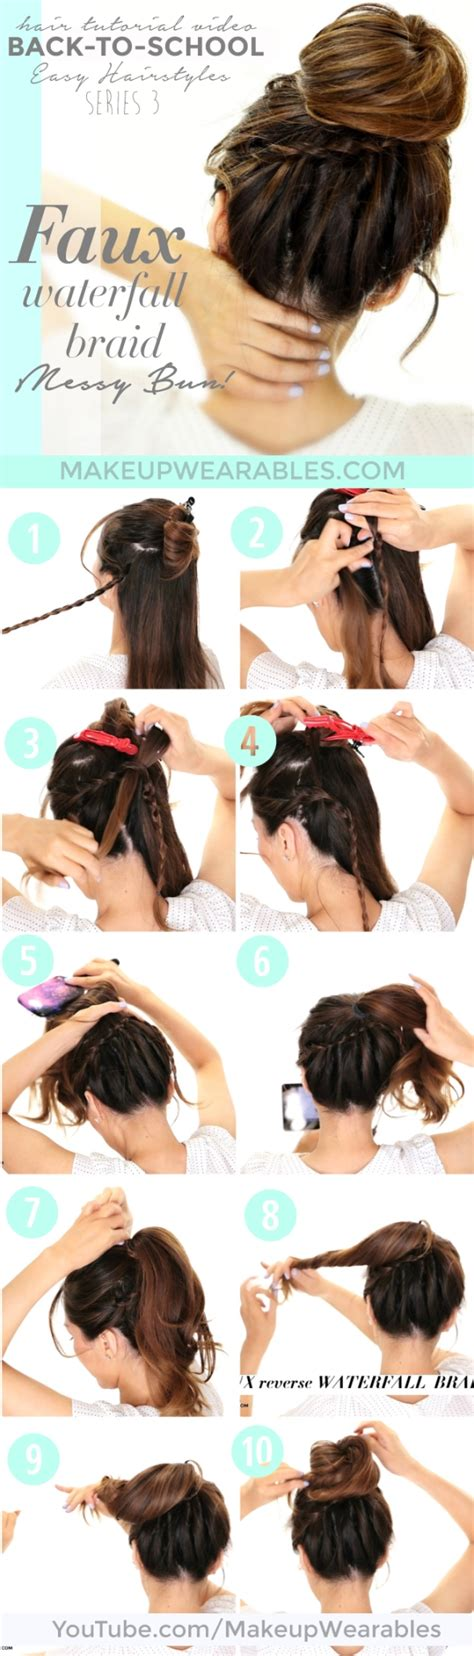 and easy hairstyles for school step by step 3 totally easy back to school hairstyles hair tutorial